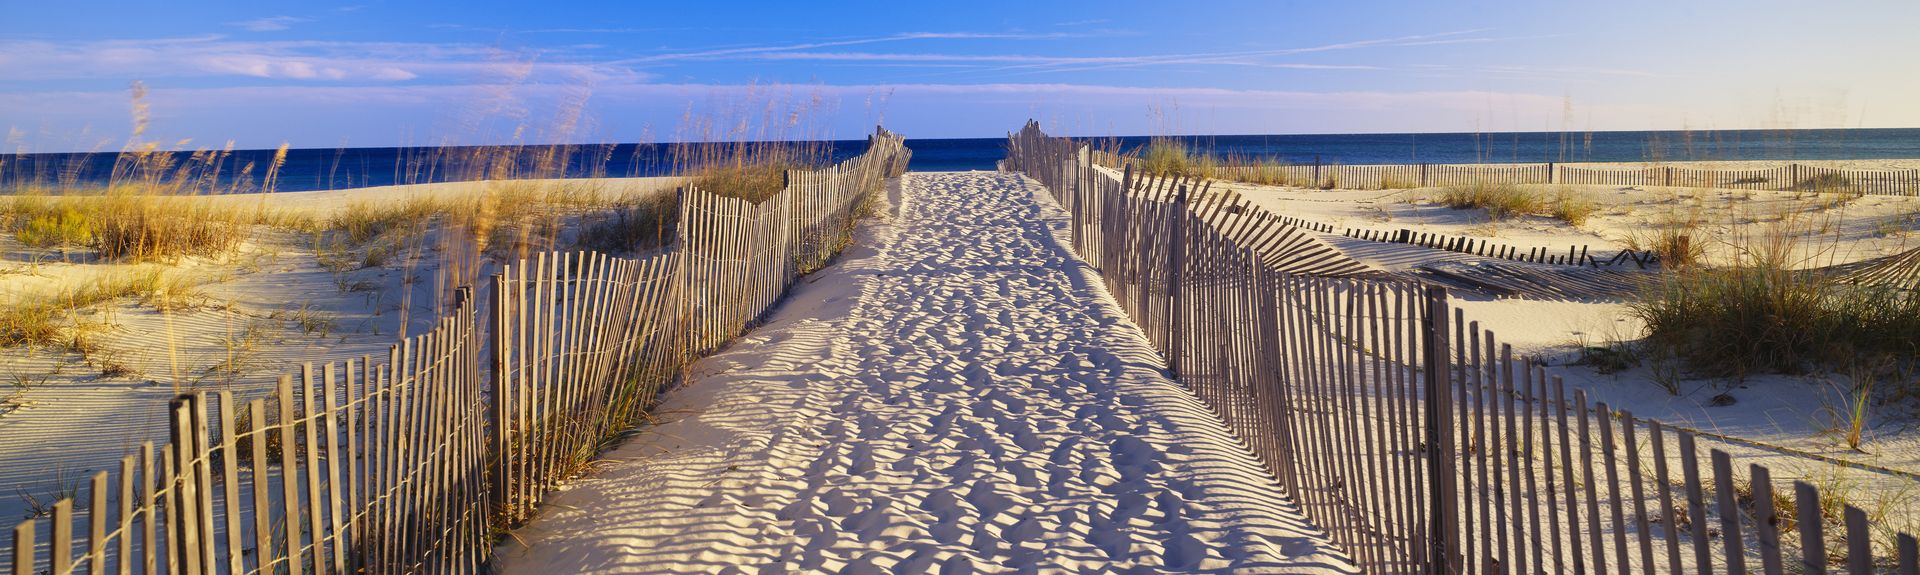 Blue Mountain Beach, Santa Rosa Beach, Florida, United States of America